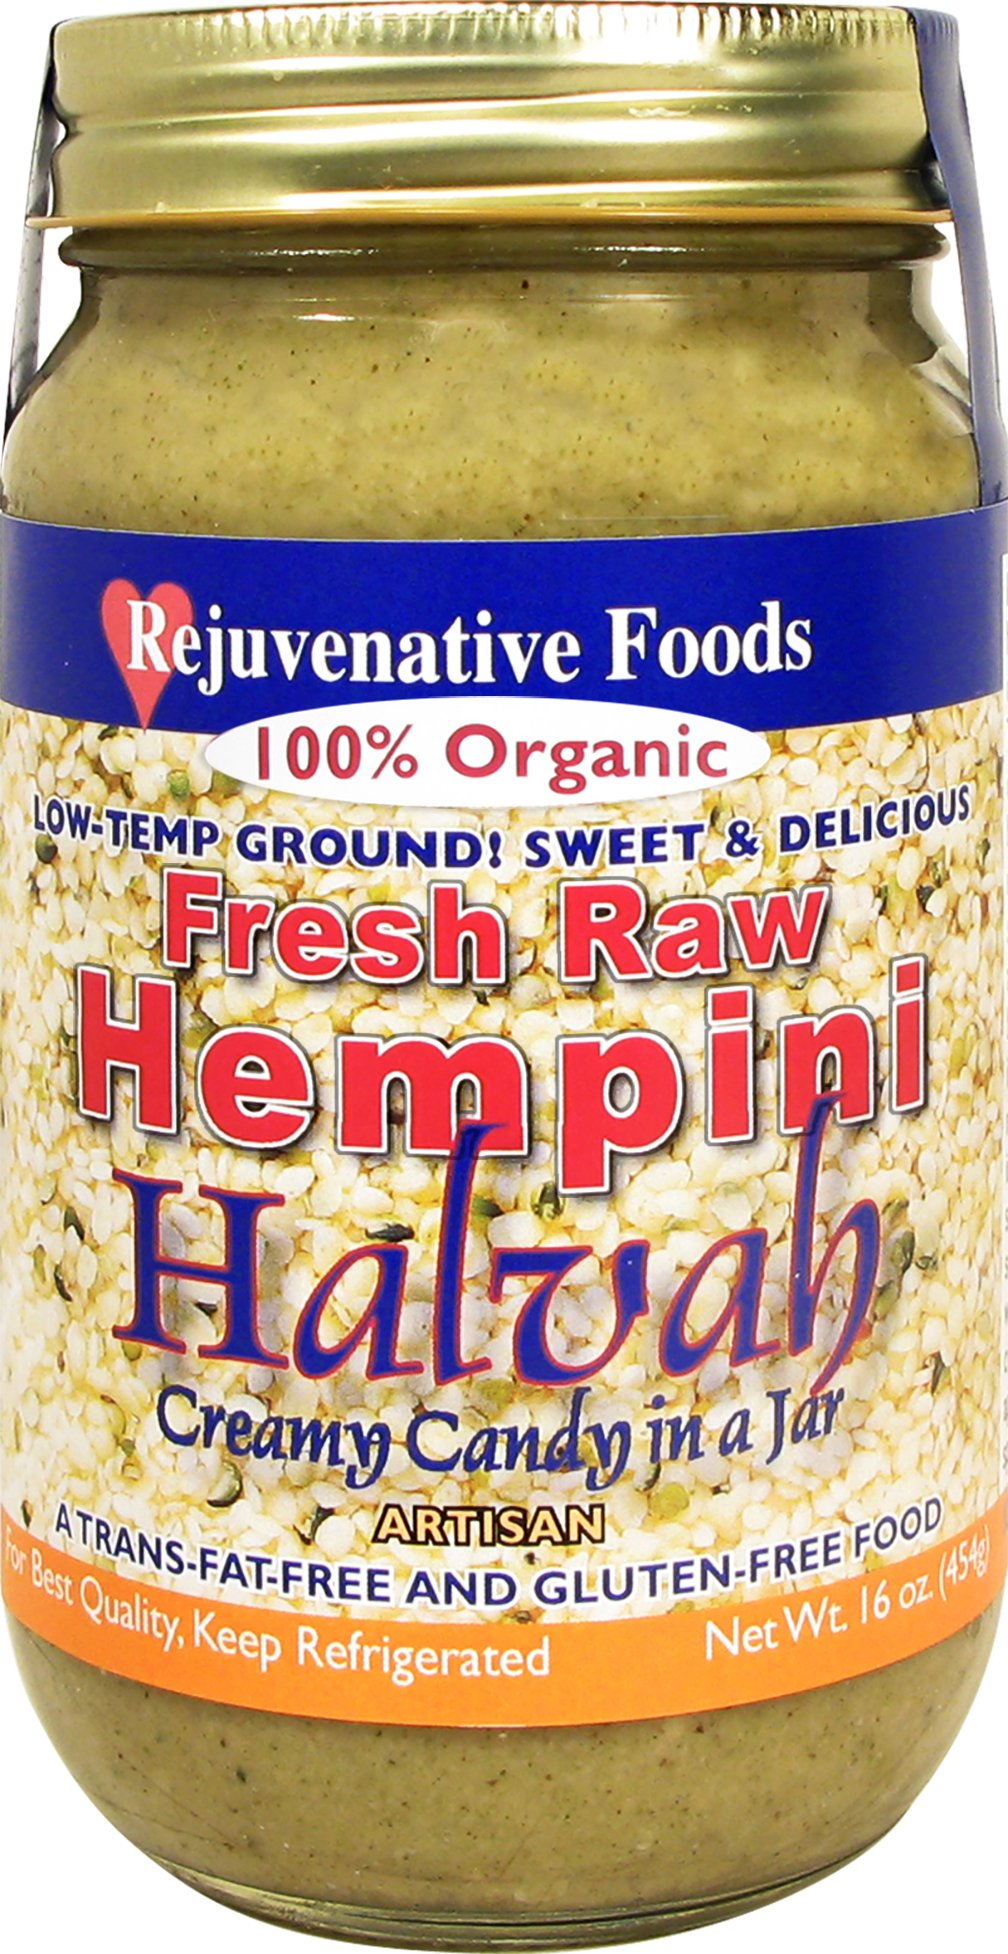 Fresh Raw Organic Hempini Halvah Honey Hemp Seed Sesame Butter Rejuvenative Foods Pure Low-Temp-Ground Candy-In-Glass Smooth-Creamy Vitamin-Protein-Antioxidant-Mineral-Nutrition Certified Organic16 oz by Rejuvenative Foods